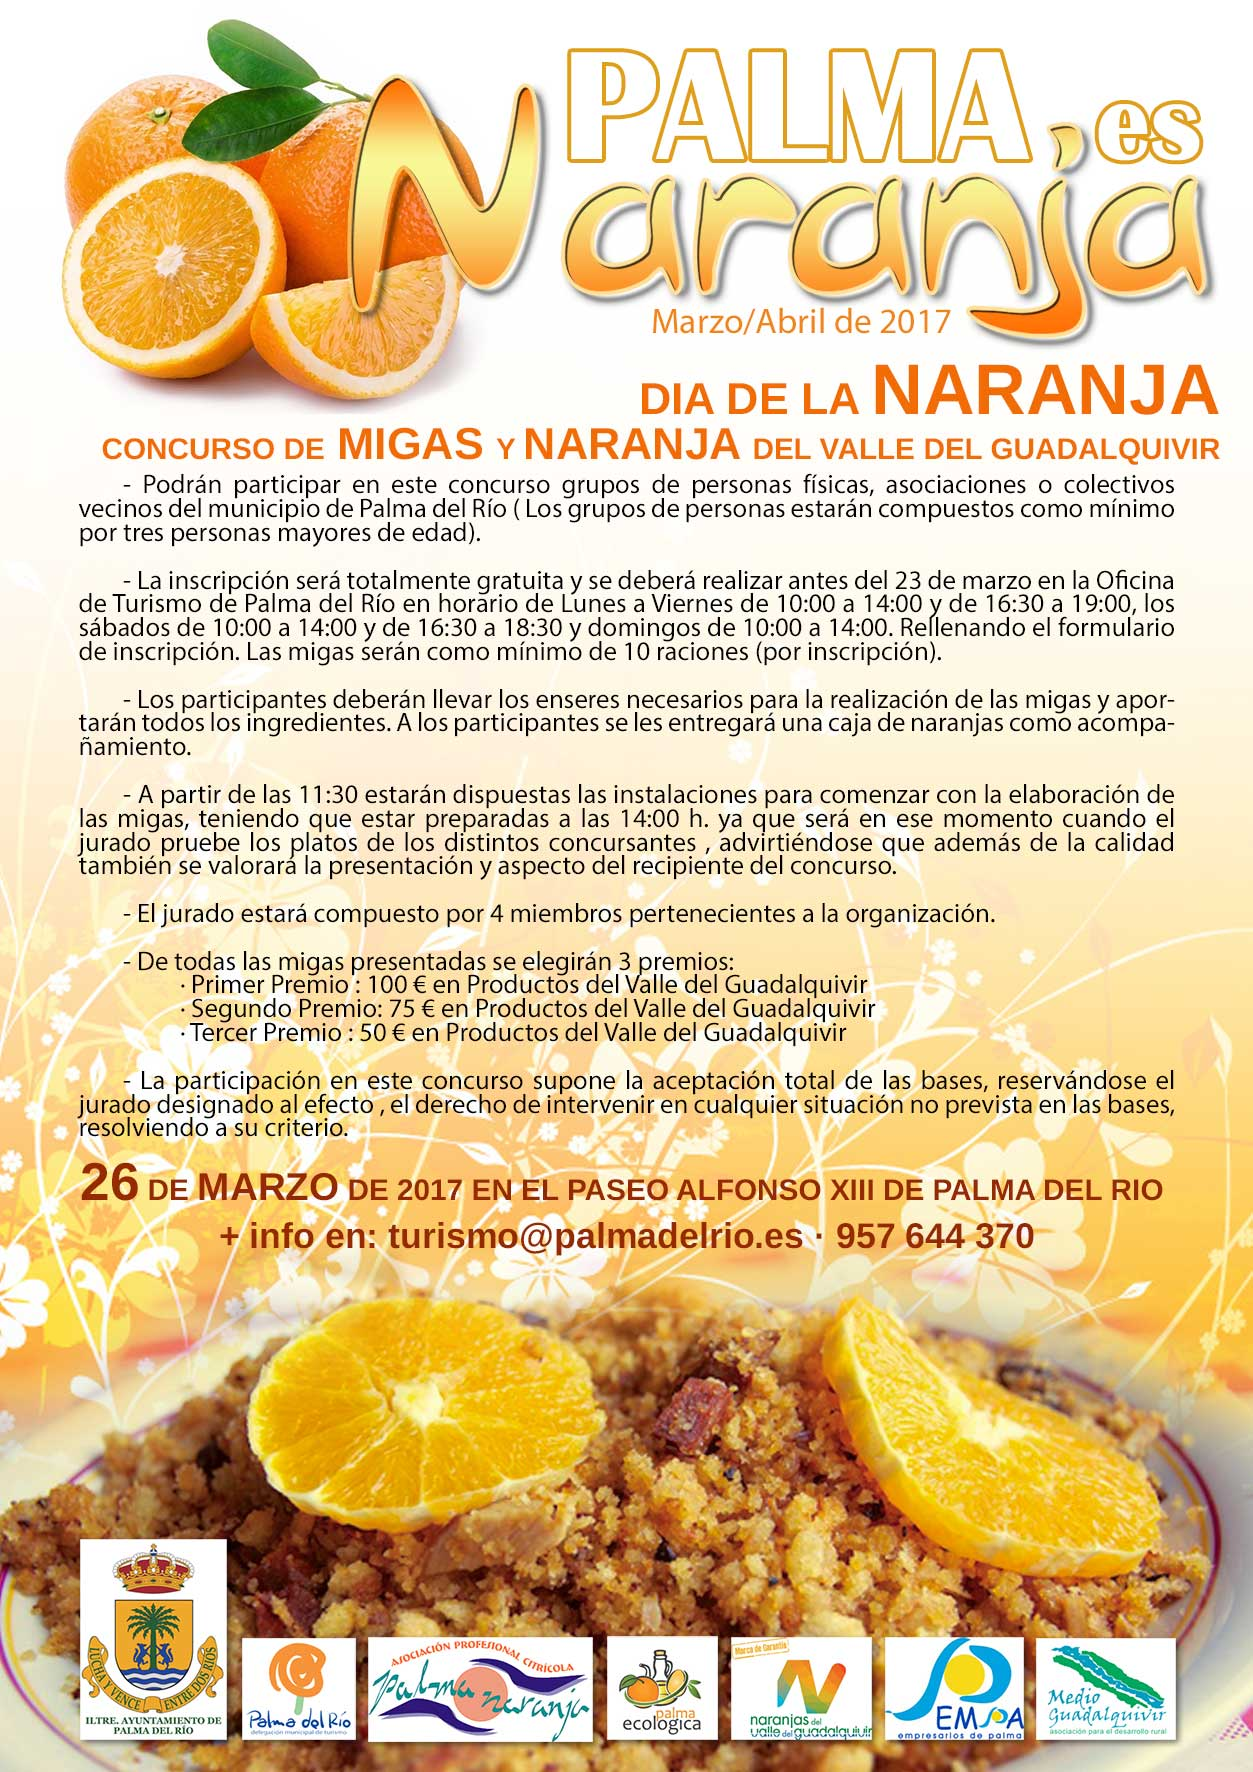 https://www.palmadelrio.es/sites/default/files/migasweb-mes-de-la-naranja-2017.jpg